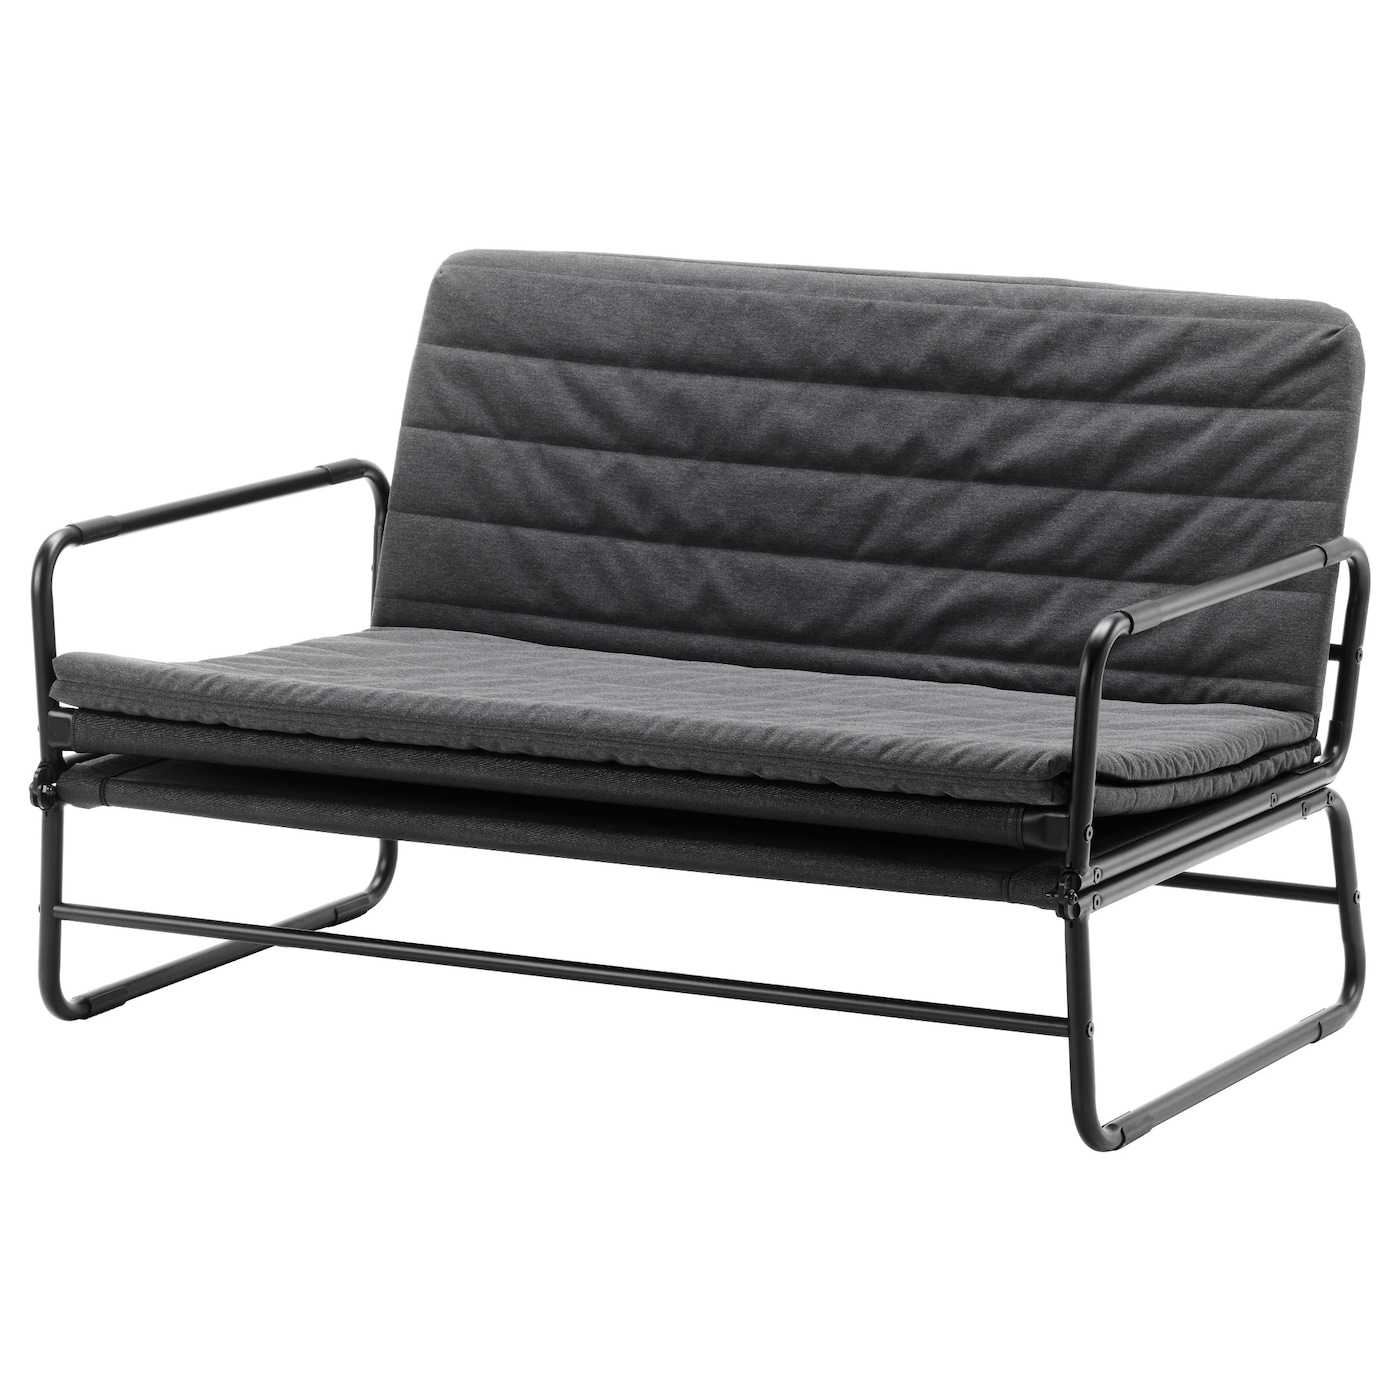 Hammarn sofa bed knisa dark grey black 120 cm ikea for Sofa bed no mattress